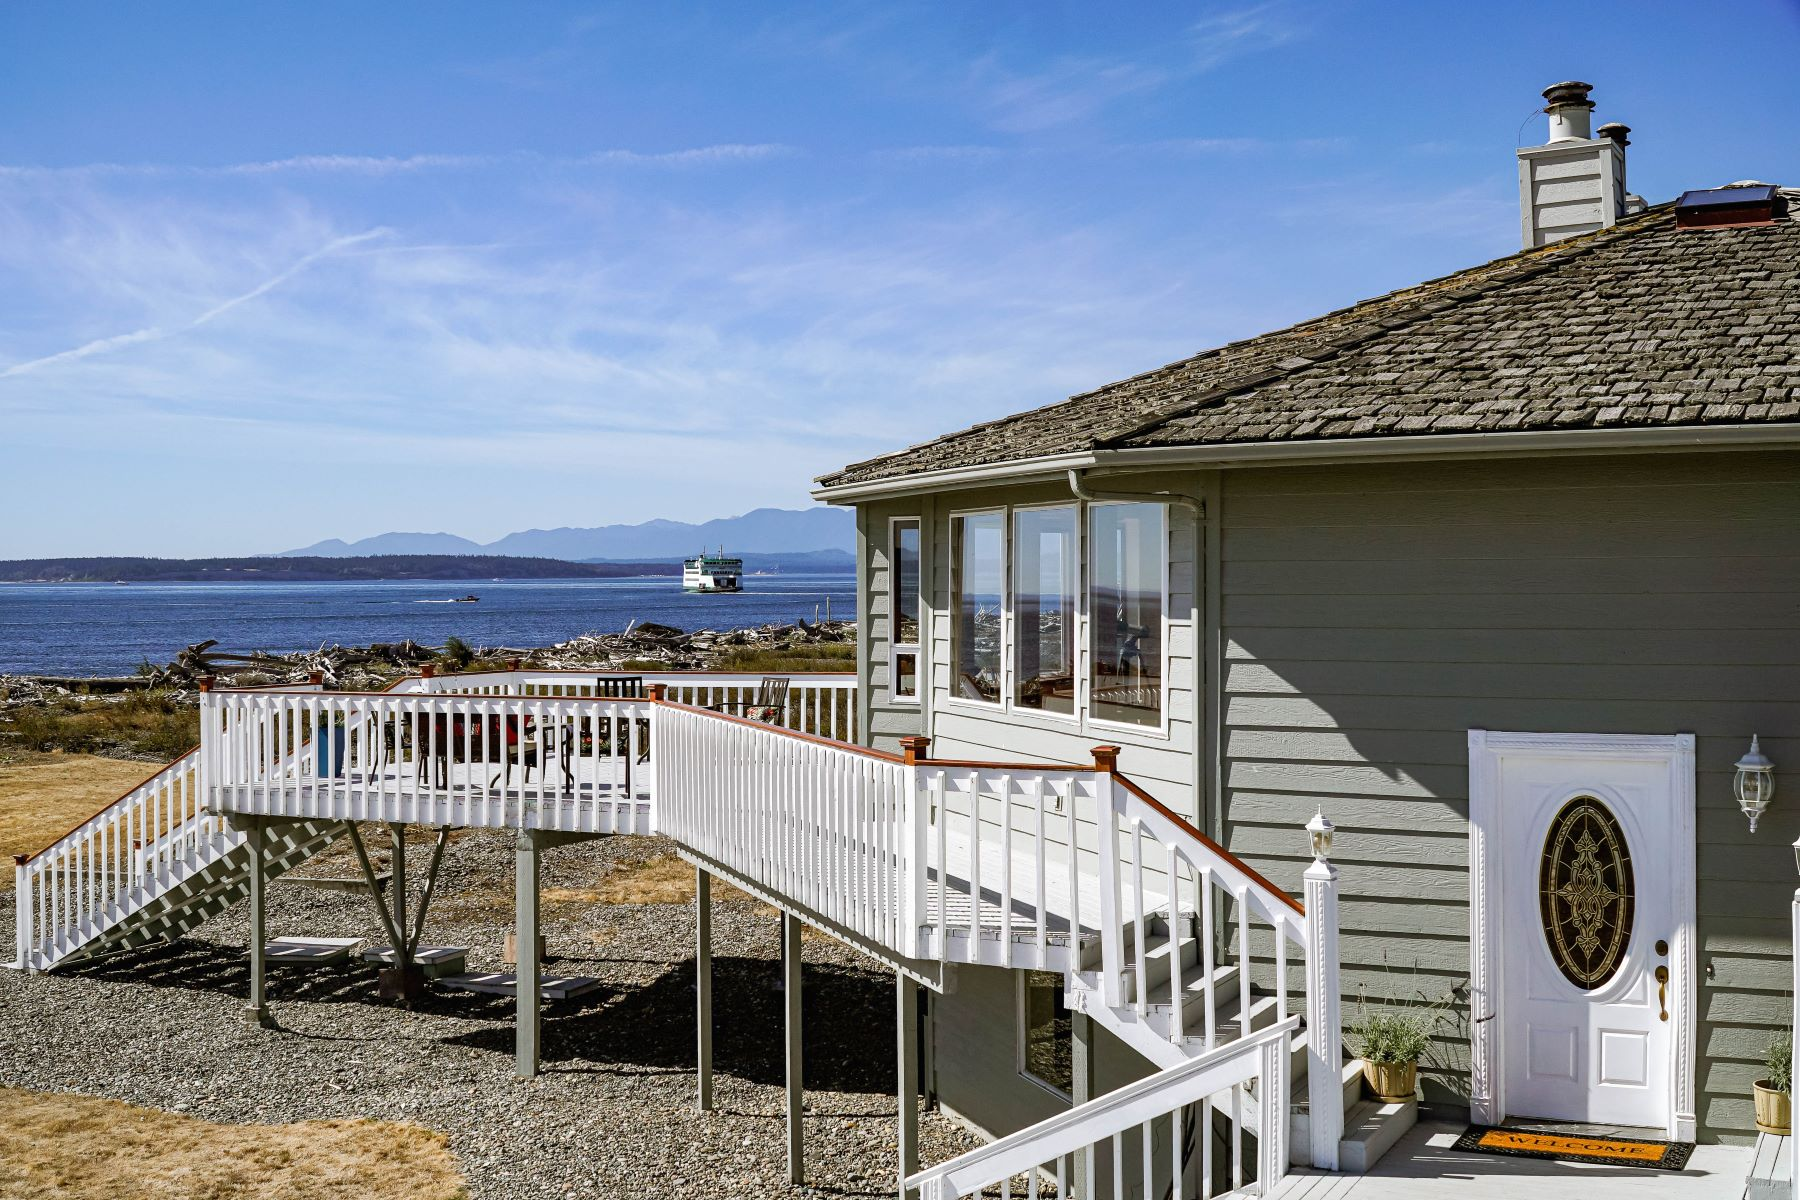 Single Family Homes for Sale at Scharwat Trust 13322 State Route 20 Coupeville, Washington 98236 United States